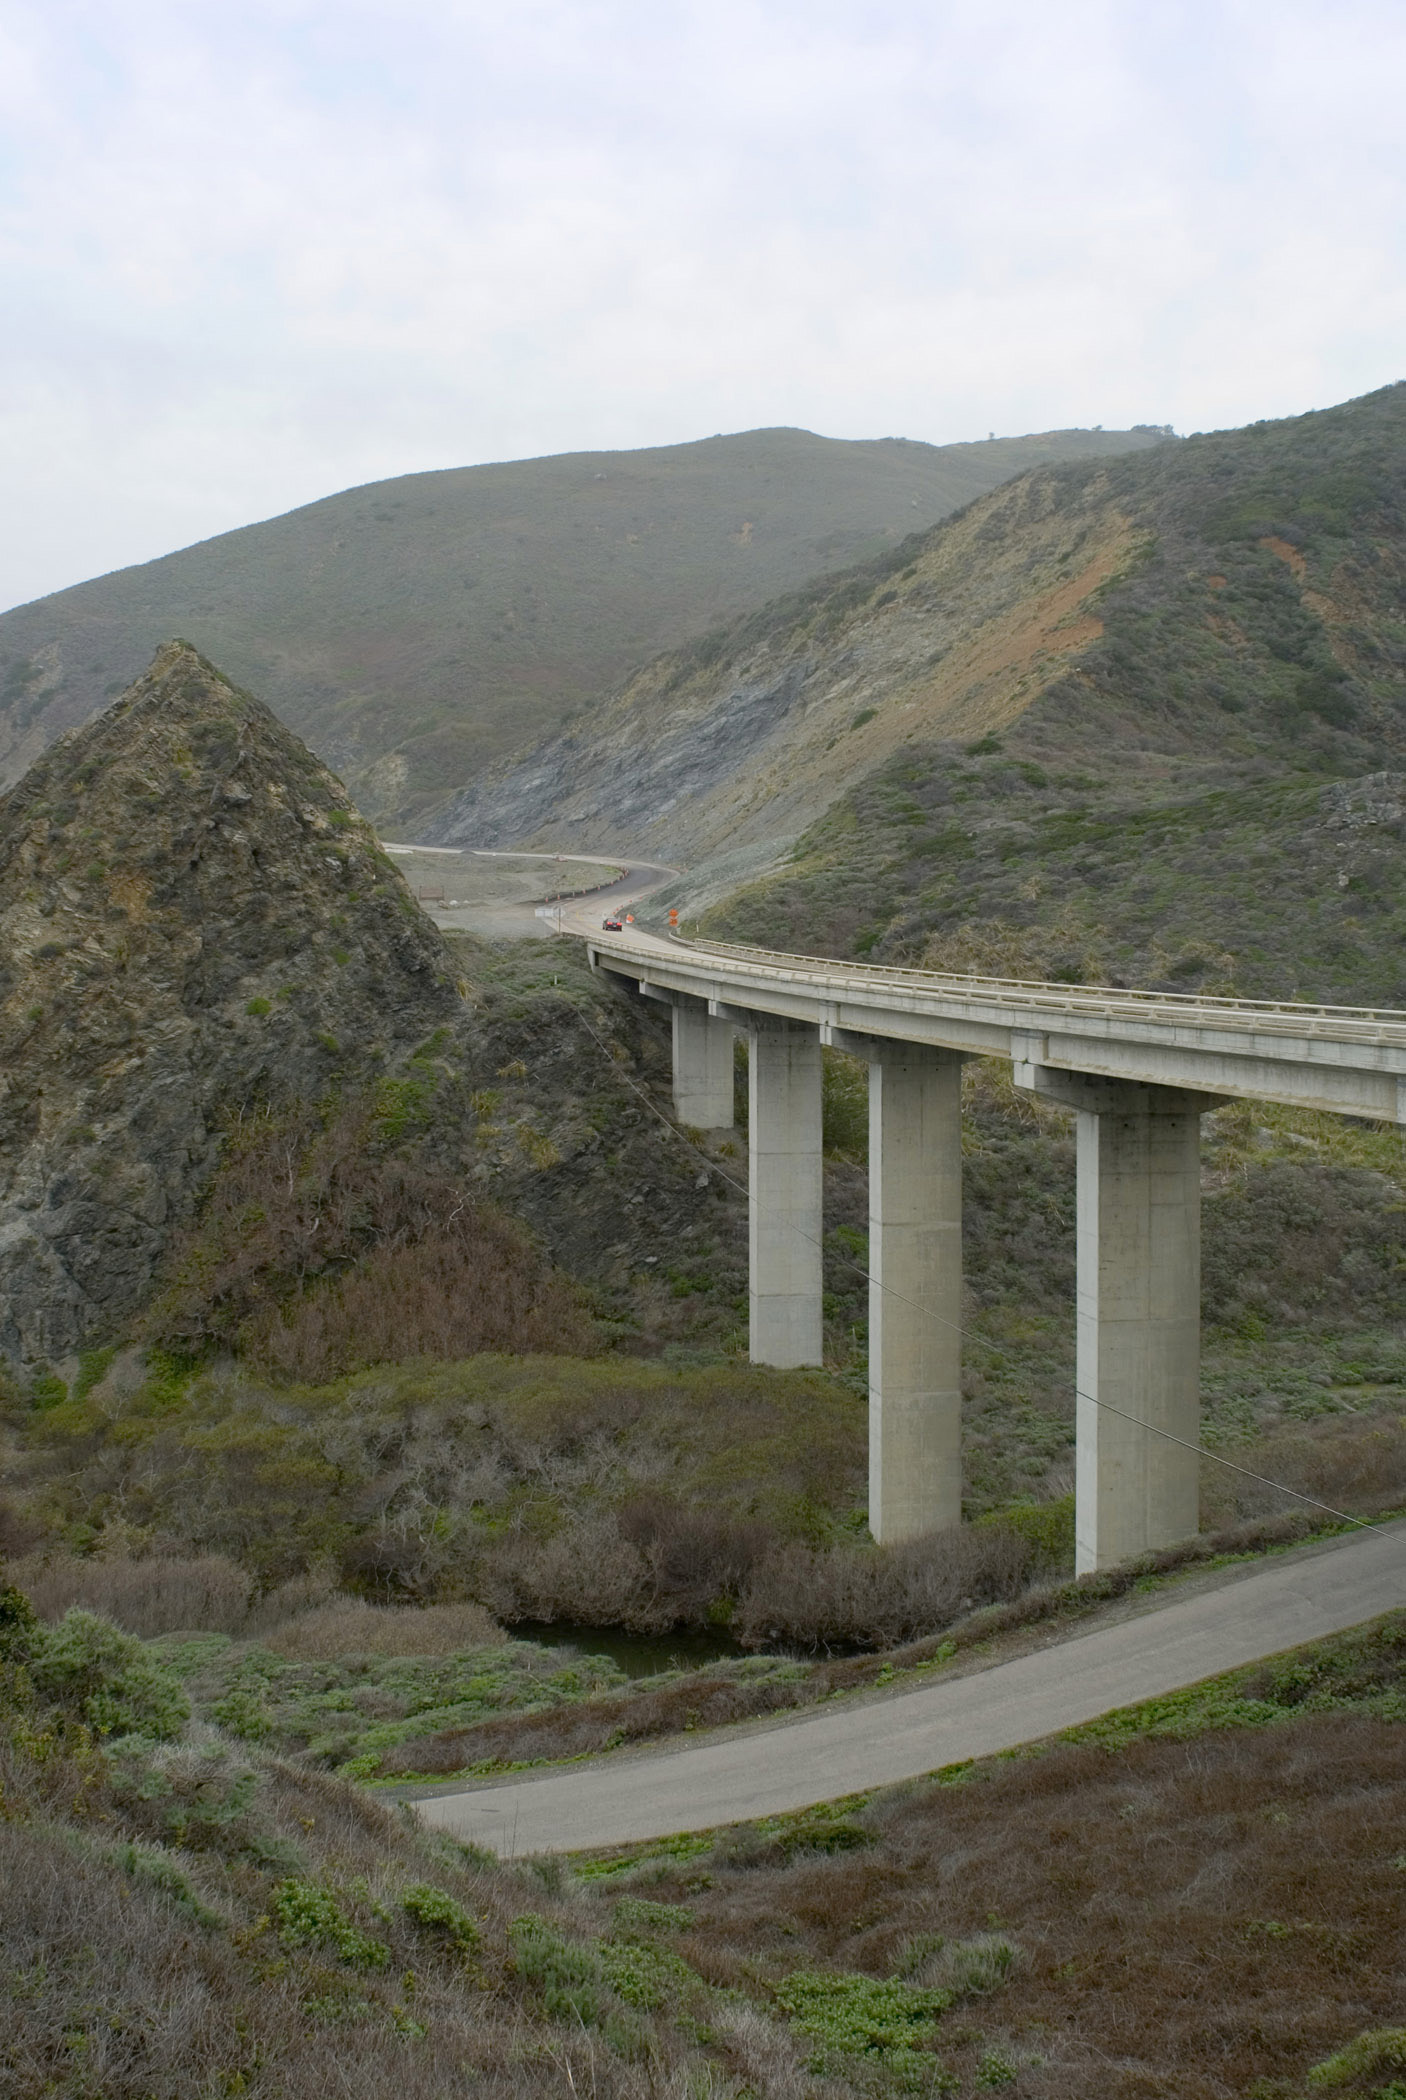 Scenic view of a concrete flyover bridge across a canyon on Highway 1 along the coast of California, USA